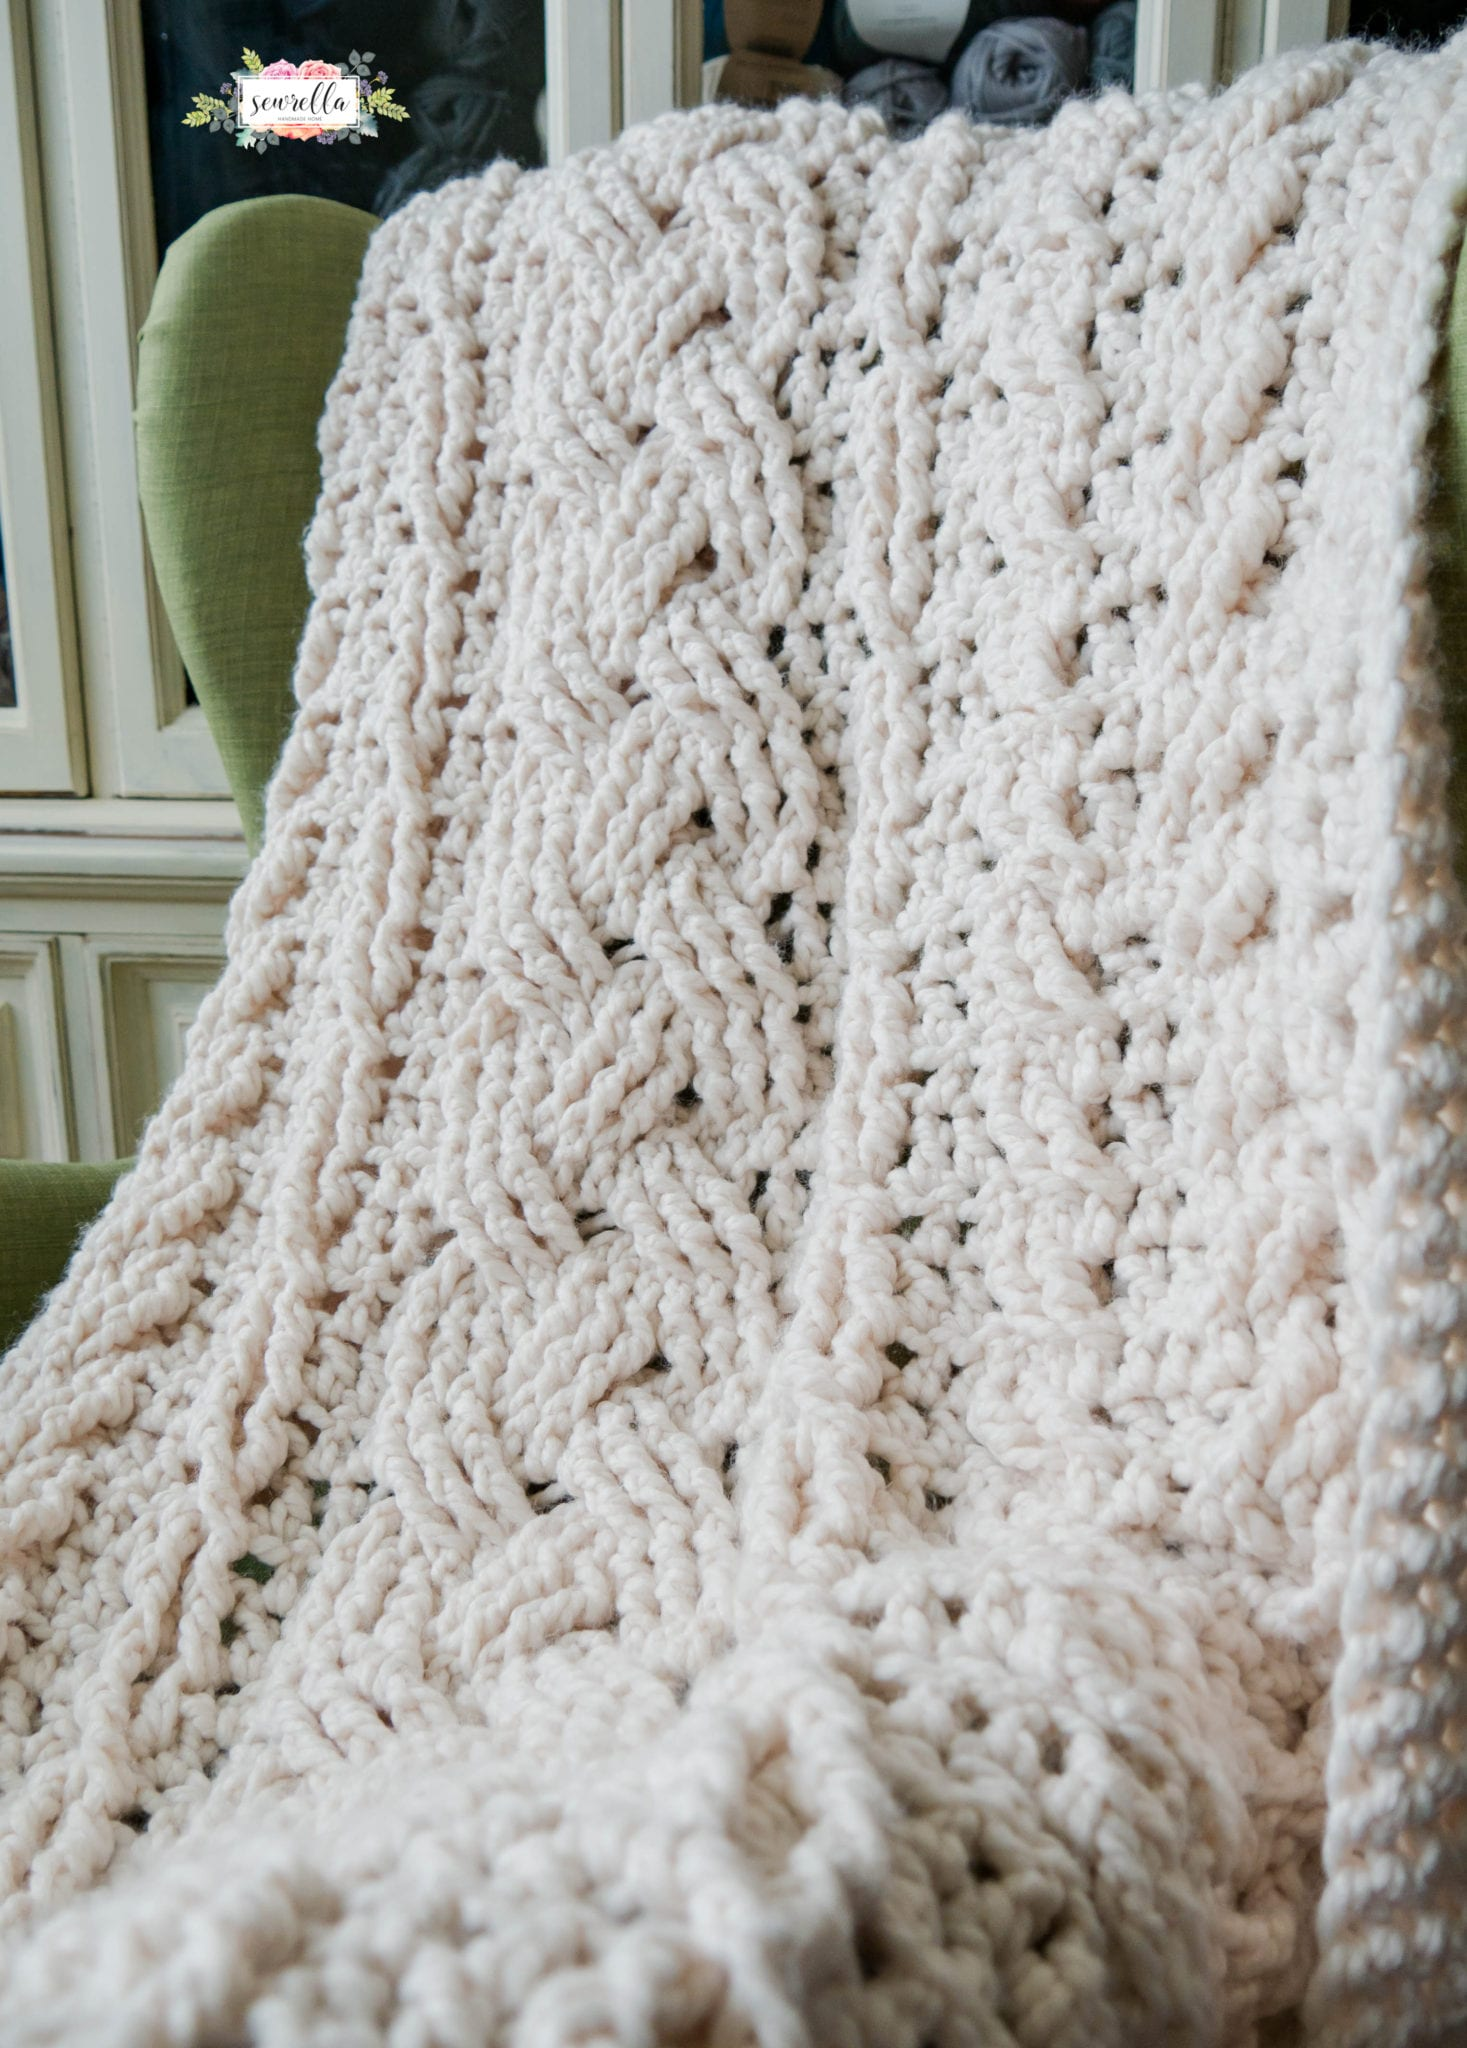 Crochet Heirloom Cabled Throw - Sewrella